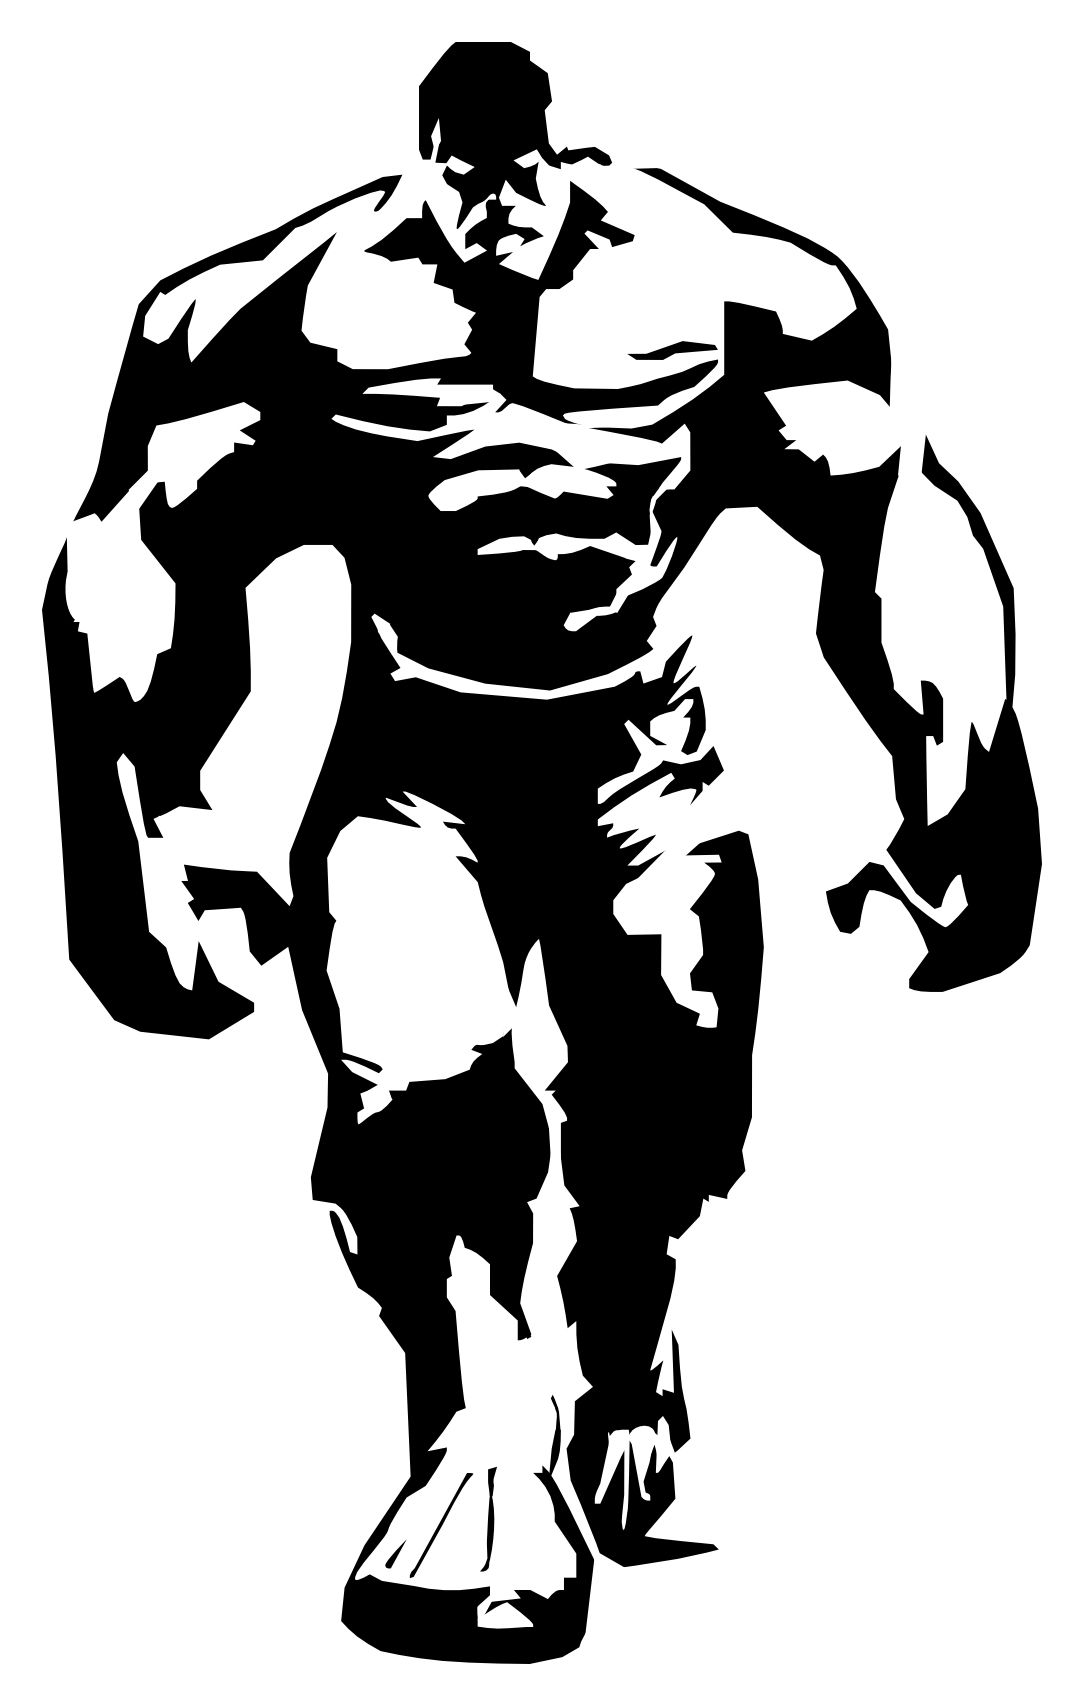 Download Or Print Your The-Hulk-Stencil - Stencil -5939